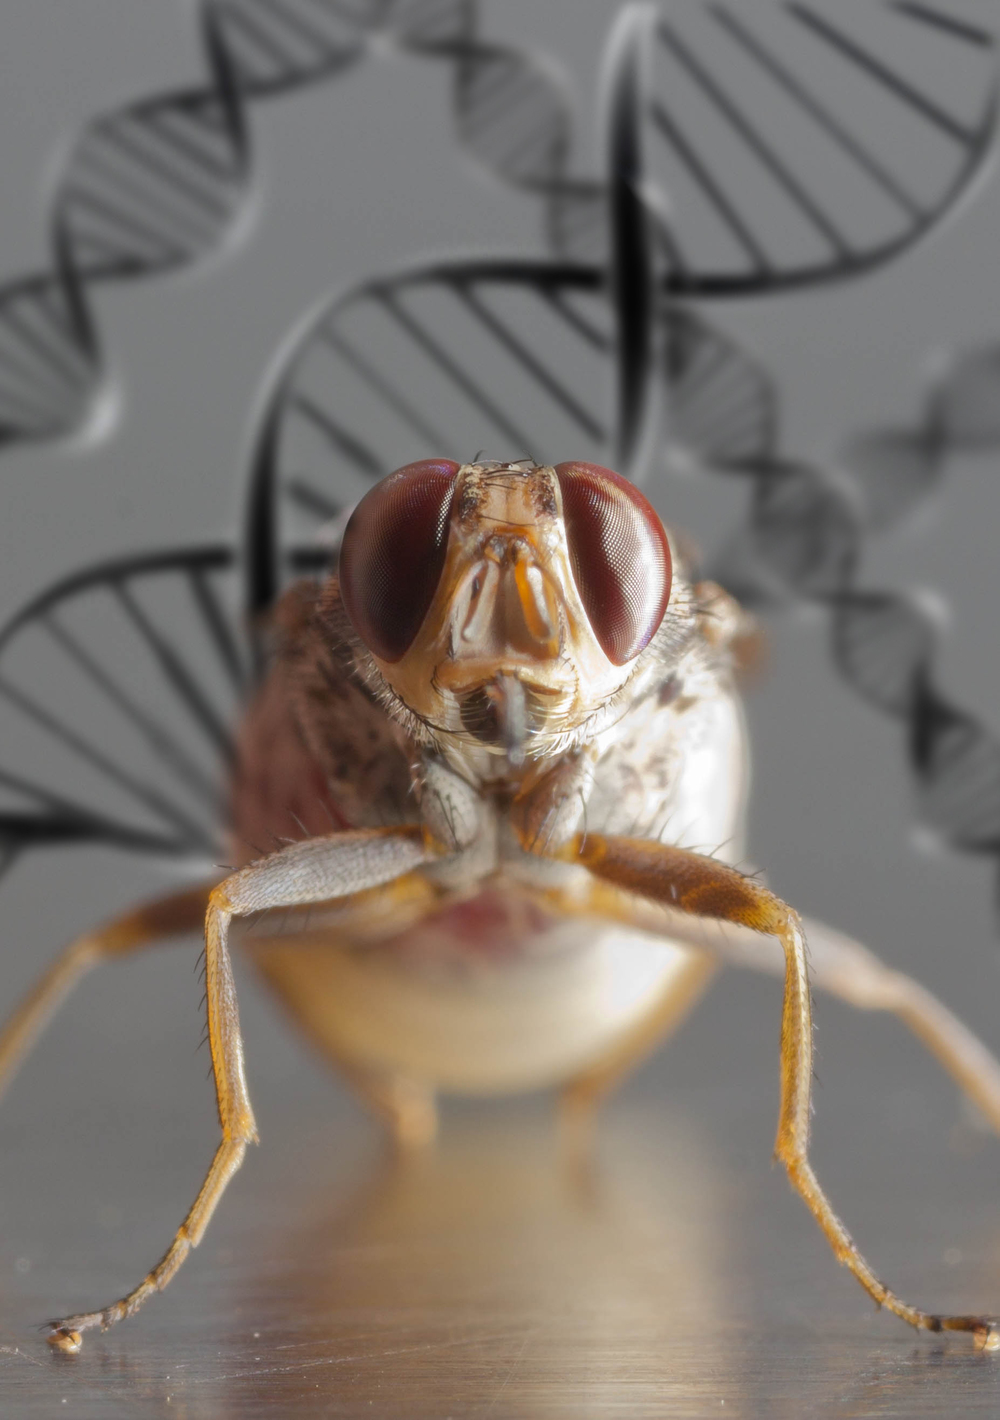 Cover Image for the Tsetse Genome